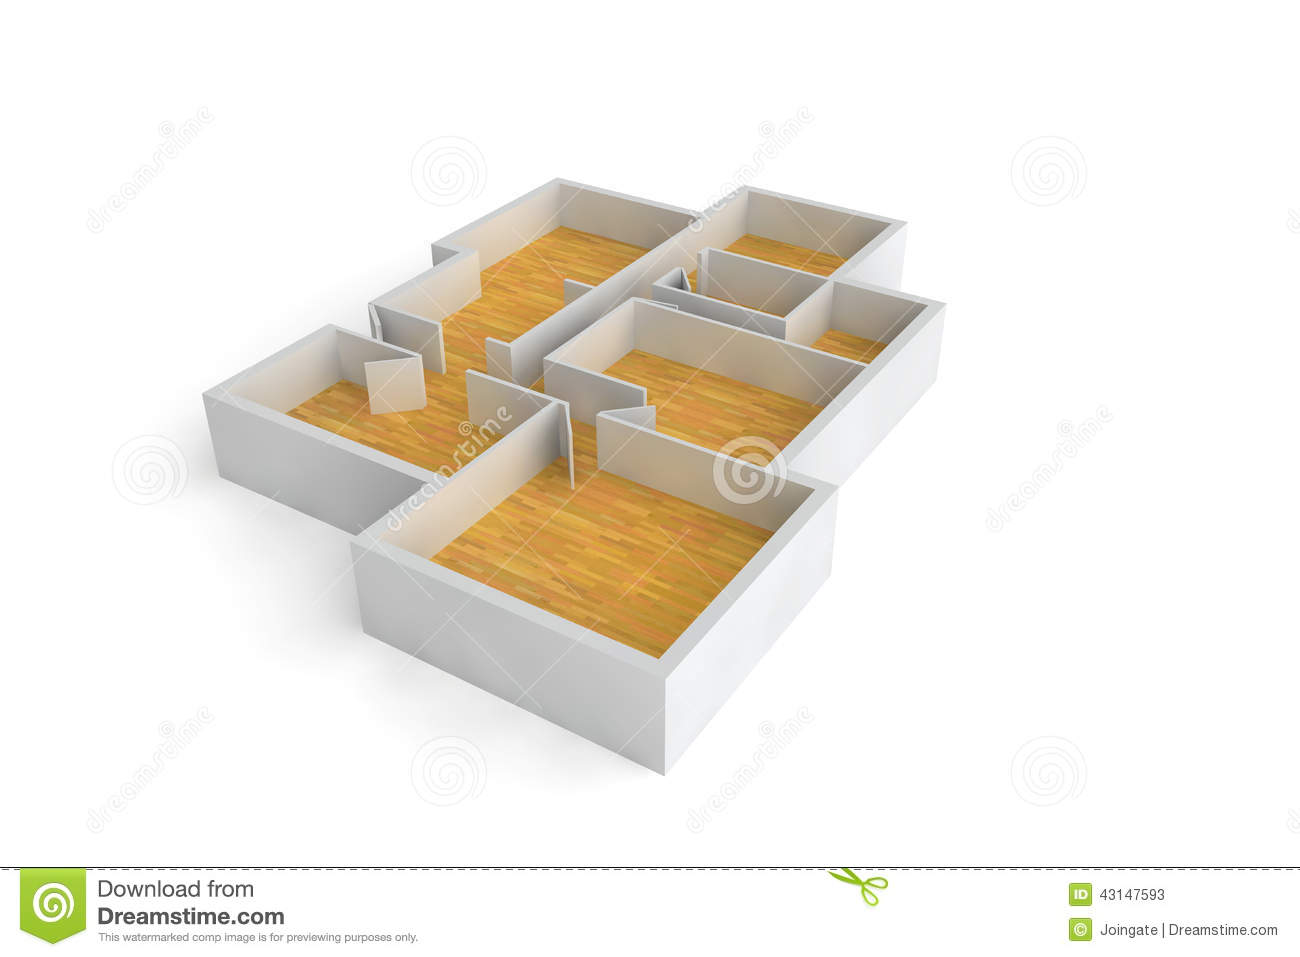 Floorplan for a typical house or office building wooden for Builder floor